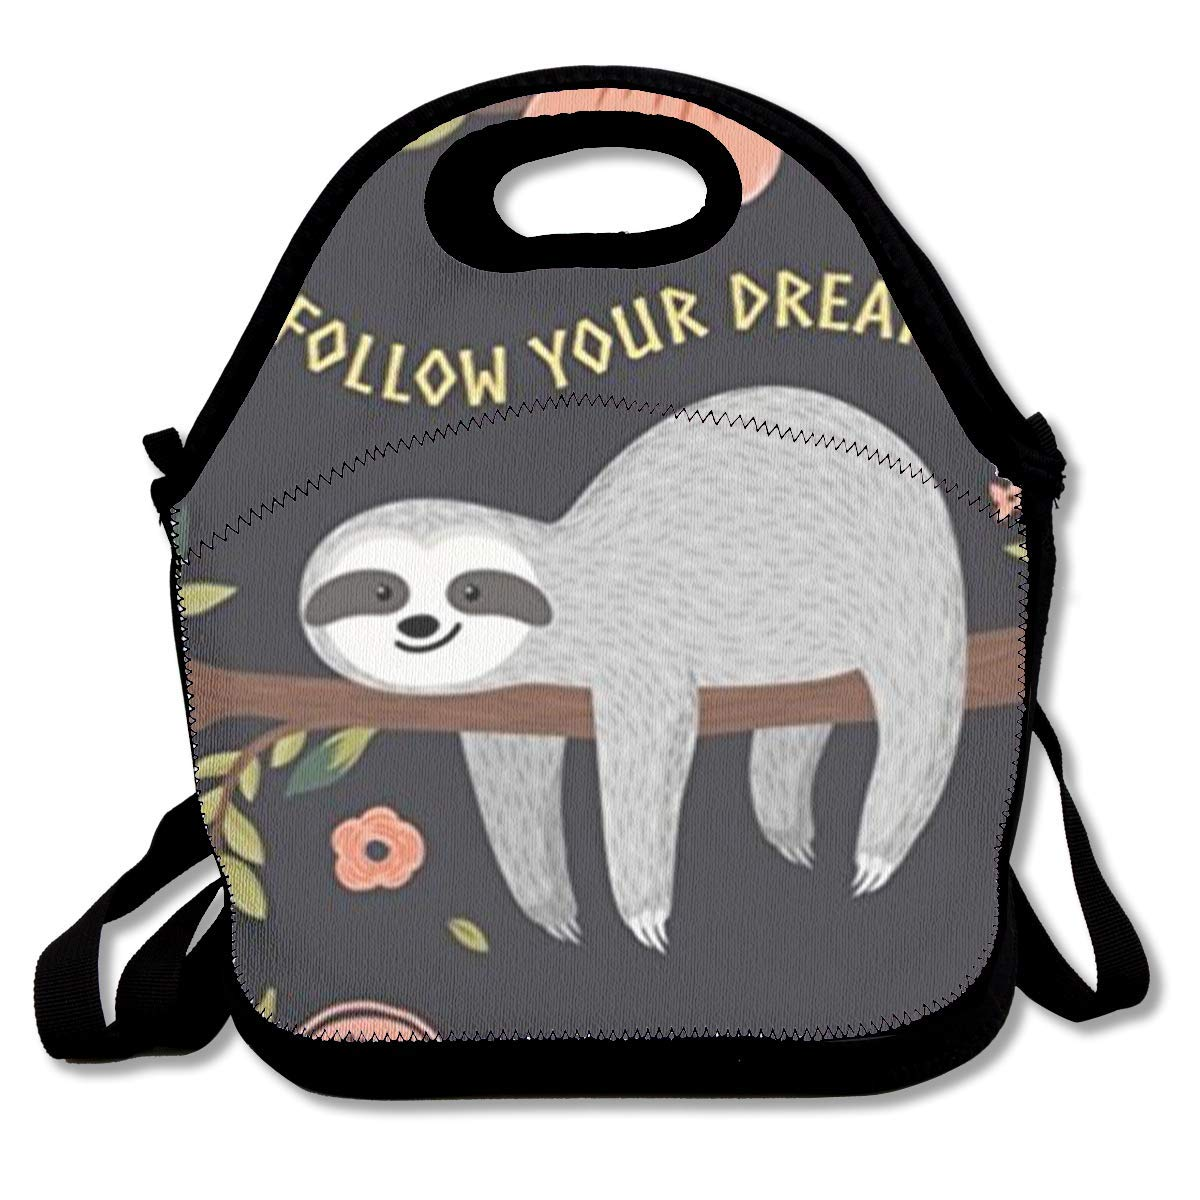 Follow Your Dreams Sloth My Spirit Animal Insulated Neoprene Lunch Bag Kids /& Adults Zipper Lunch Tote Handbag with Adjustable Strap Lunchbox for School Office